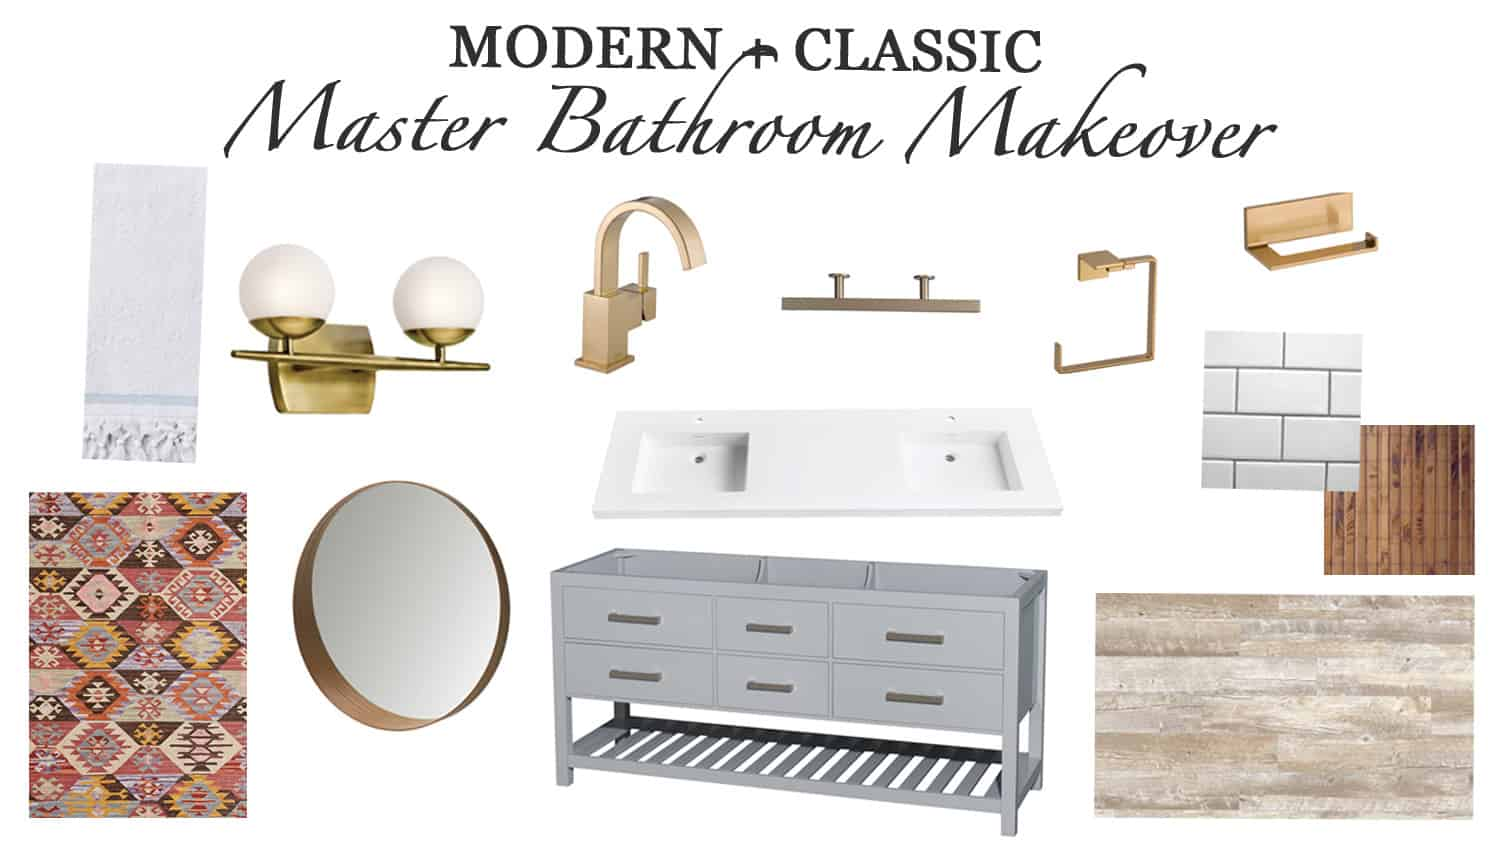 Our Master Bathroom Renovation Progress Report design board